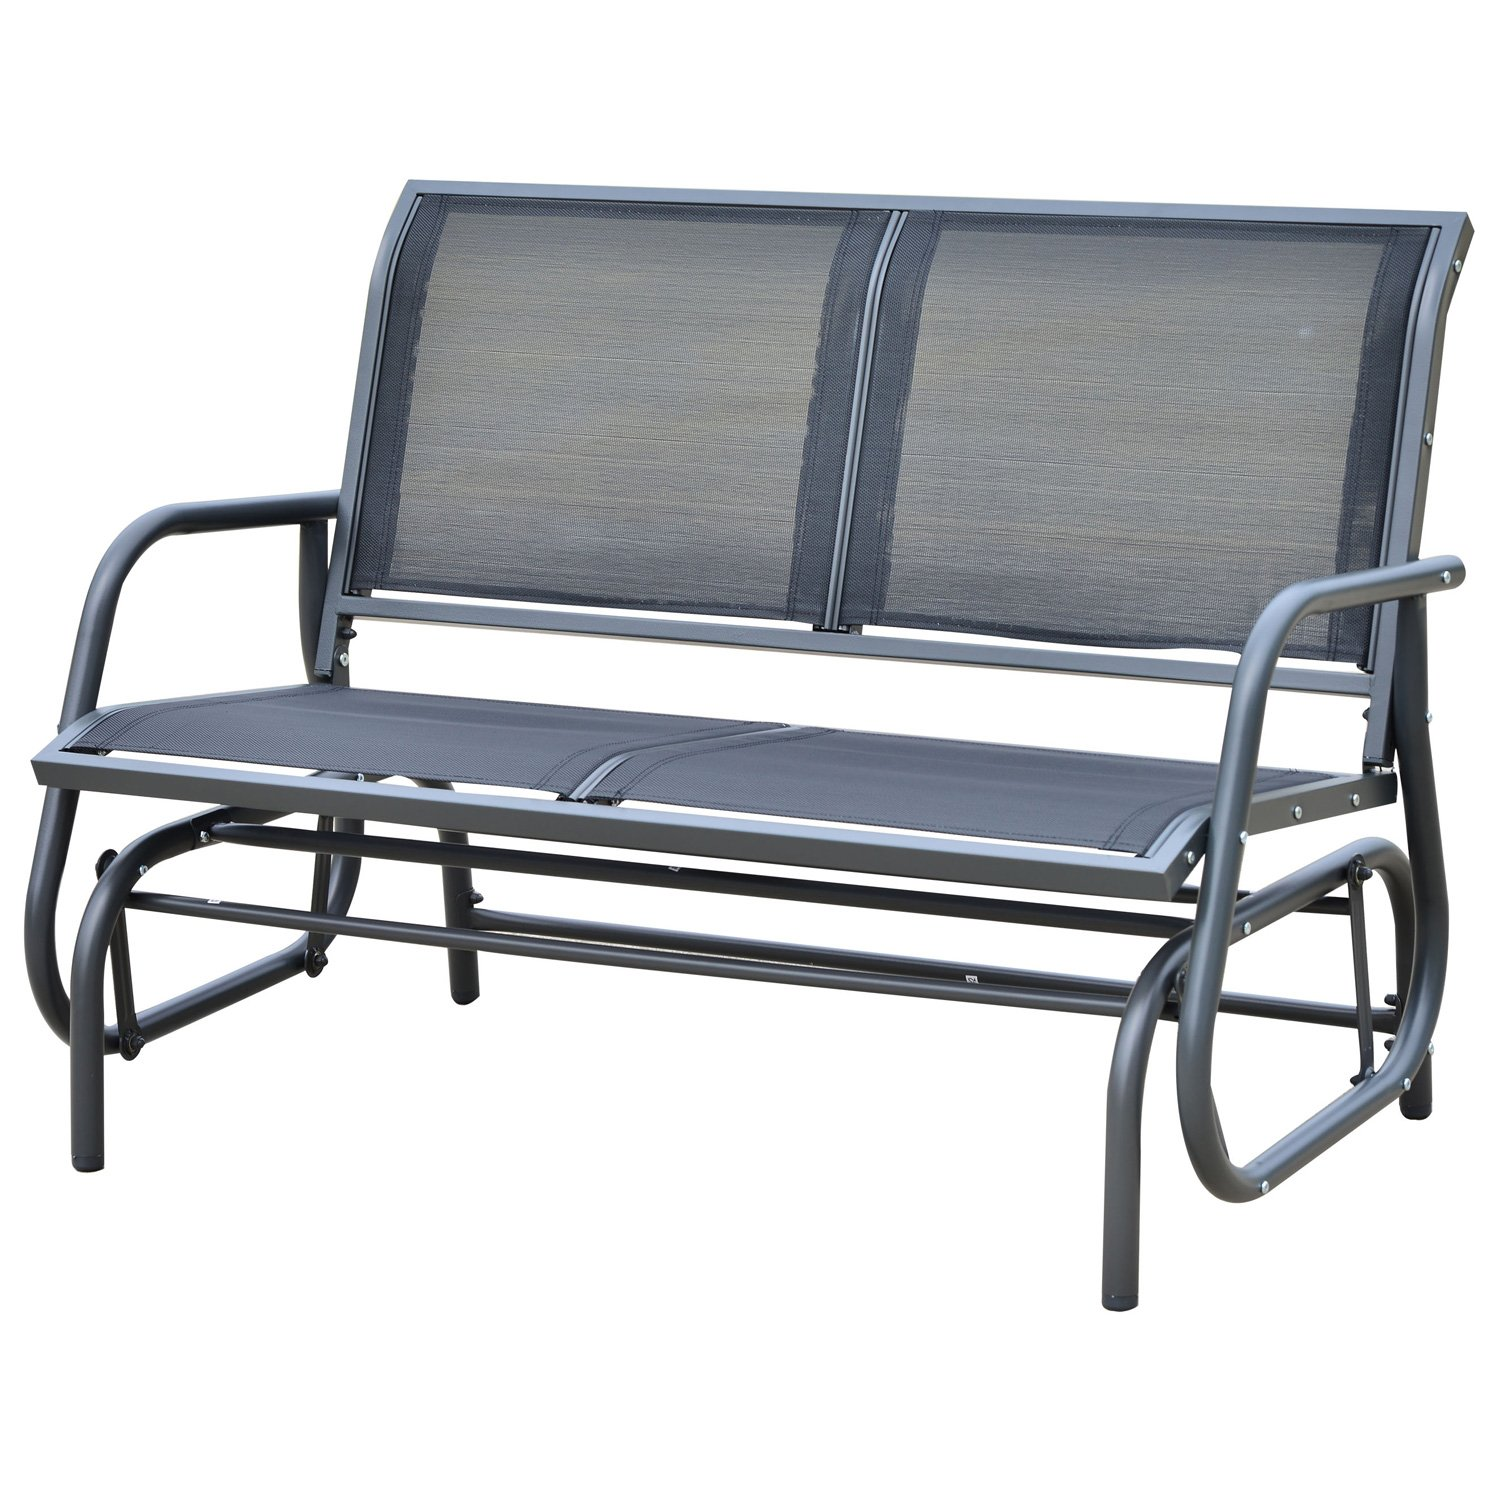 Outsunny Double Seat Swing Chair Outdoor Garden Patio Glider Bench